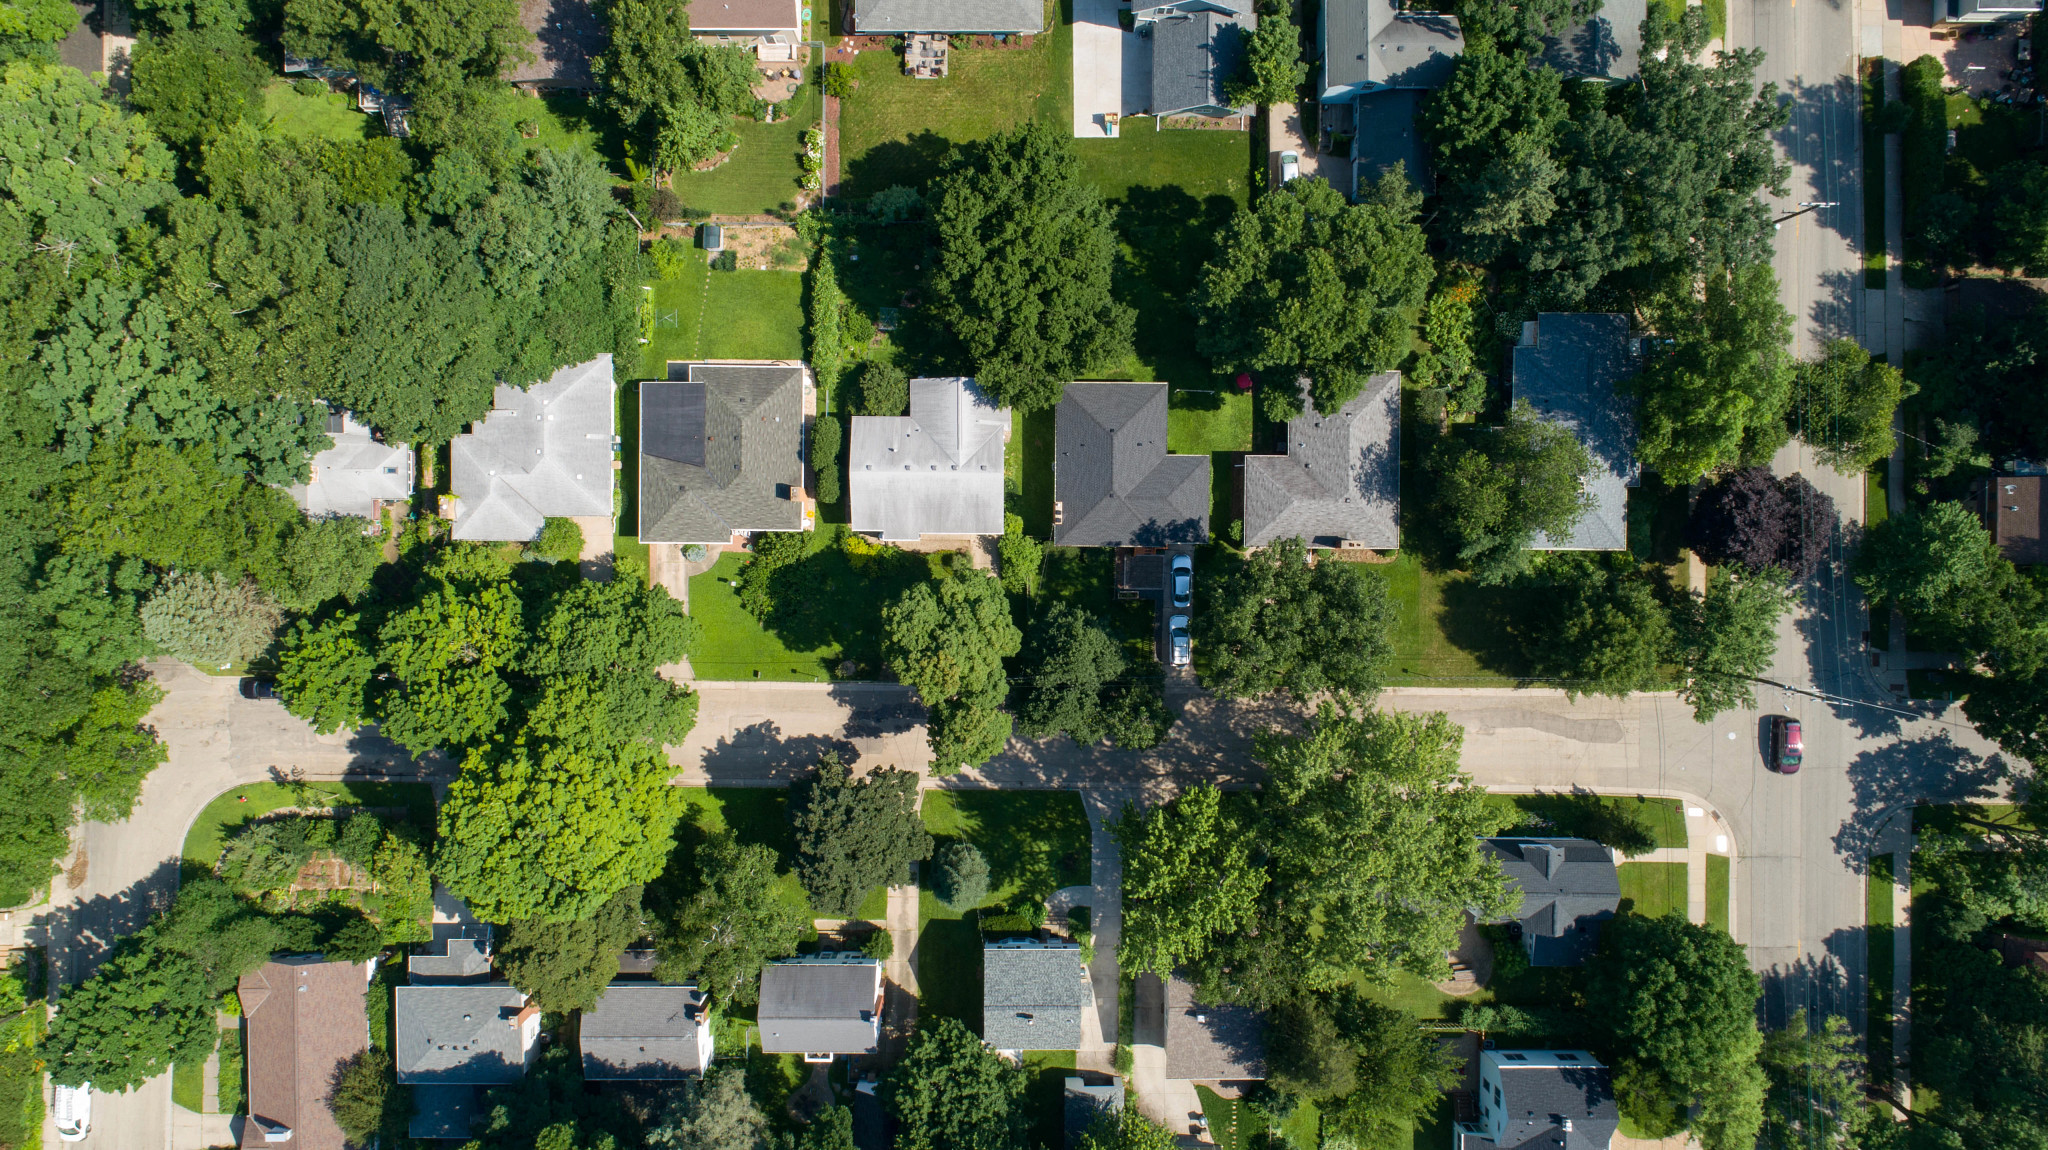 An aerial video of houses surrounded by trees in summer.